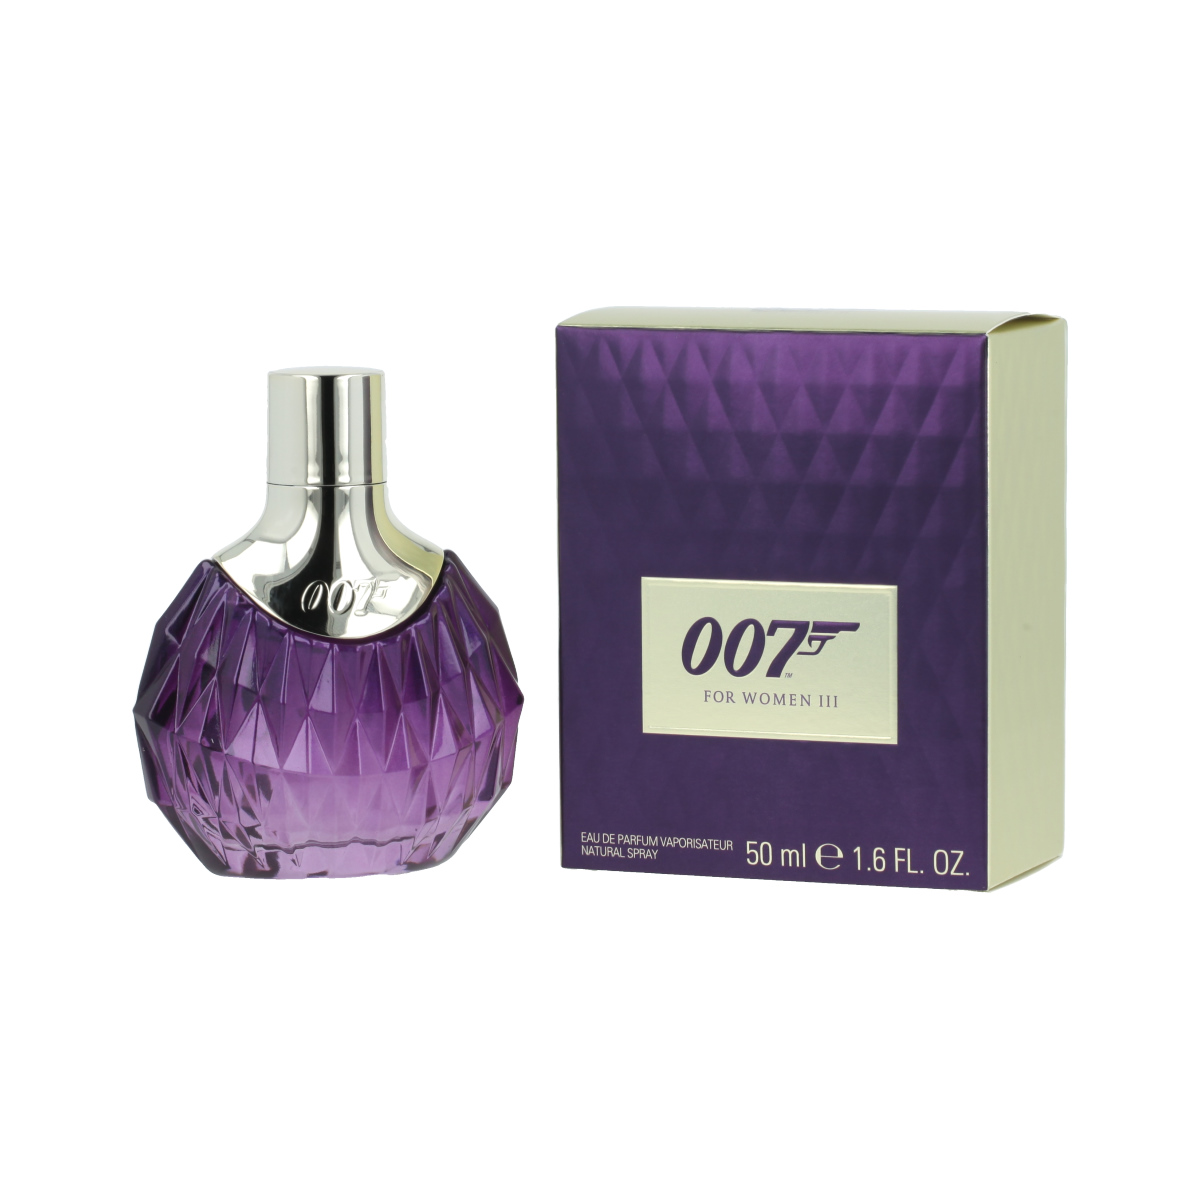 James Bond James Bond 007 for Women III Eau De Parfum 50 ml (woman) 97810